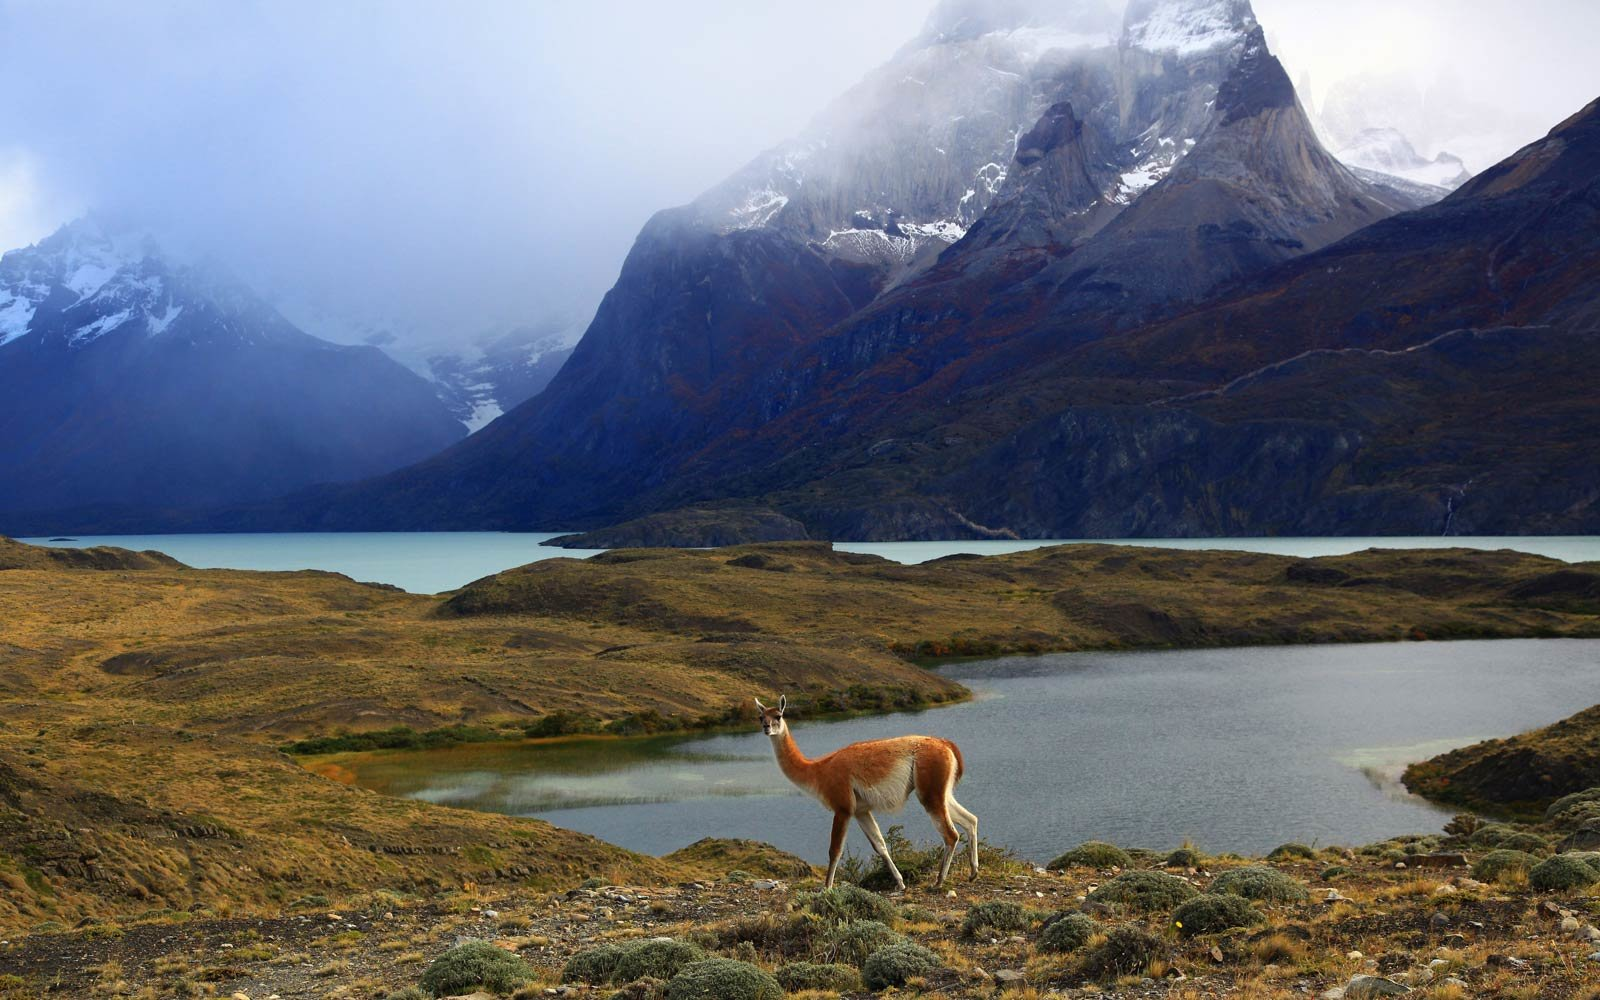 Soak Up the Scenery in Patagonia